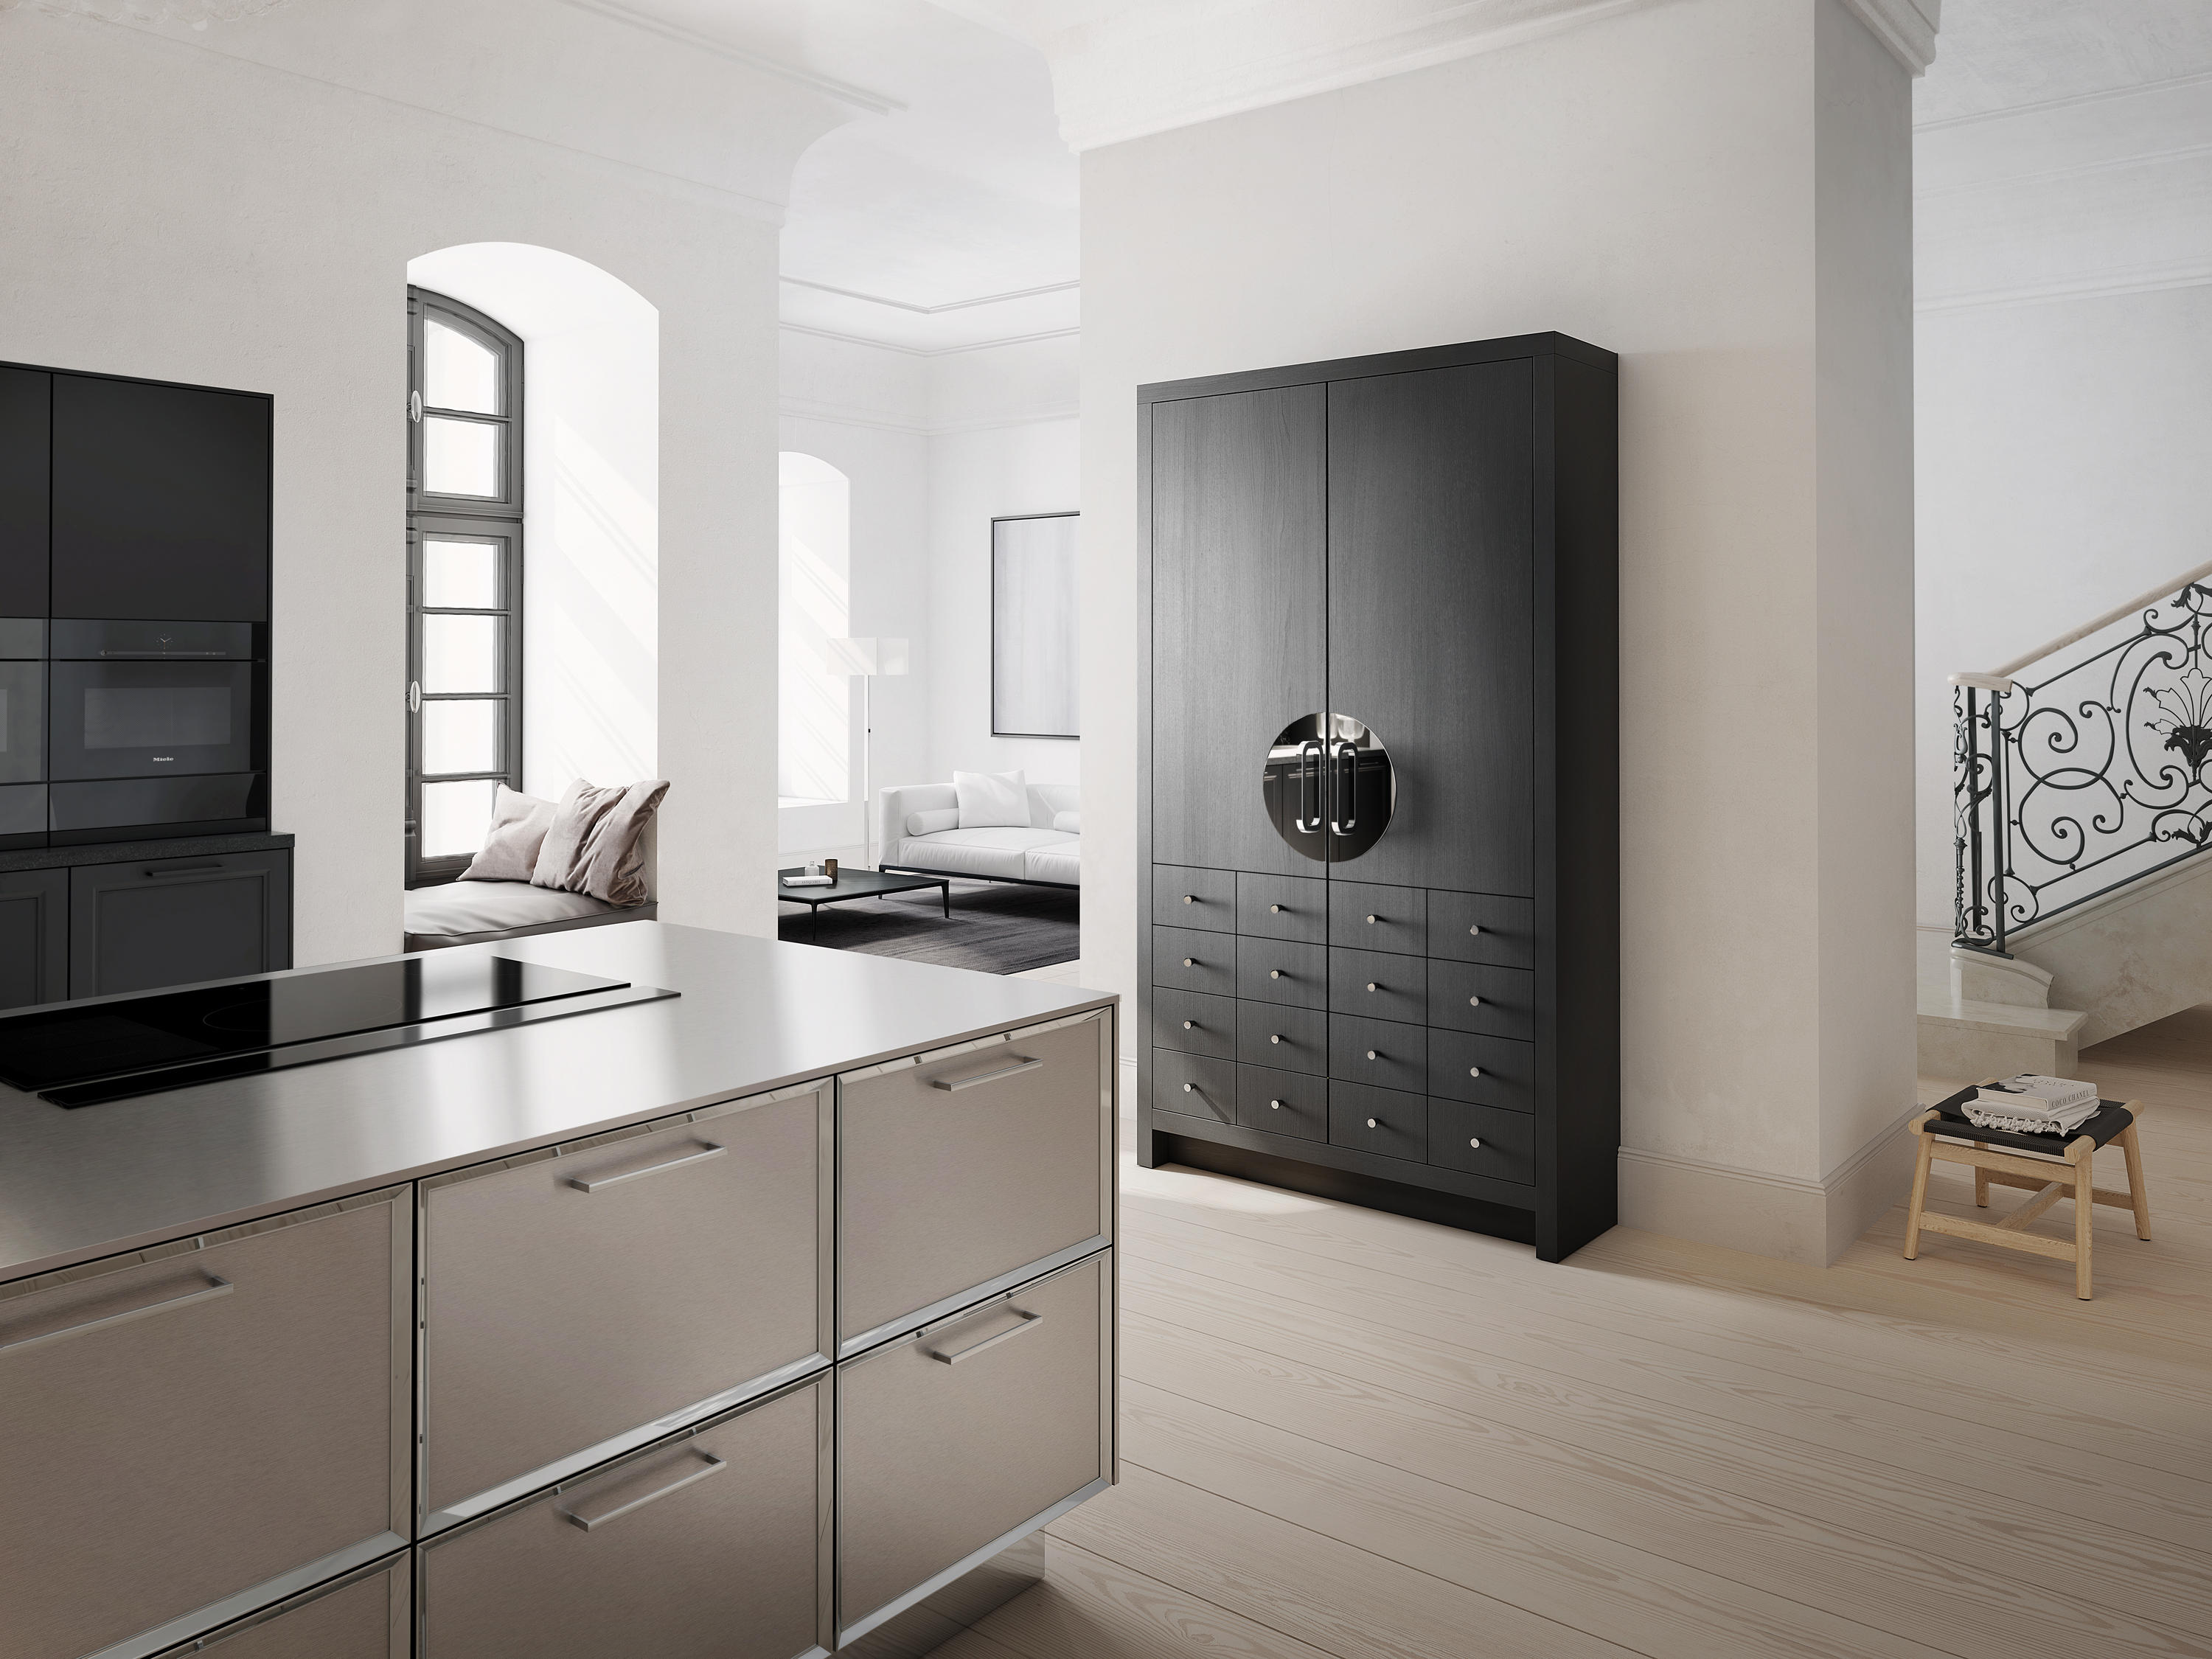 Clic Ed Kitchens From Siematic Architonic